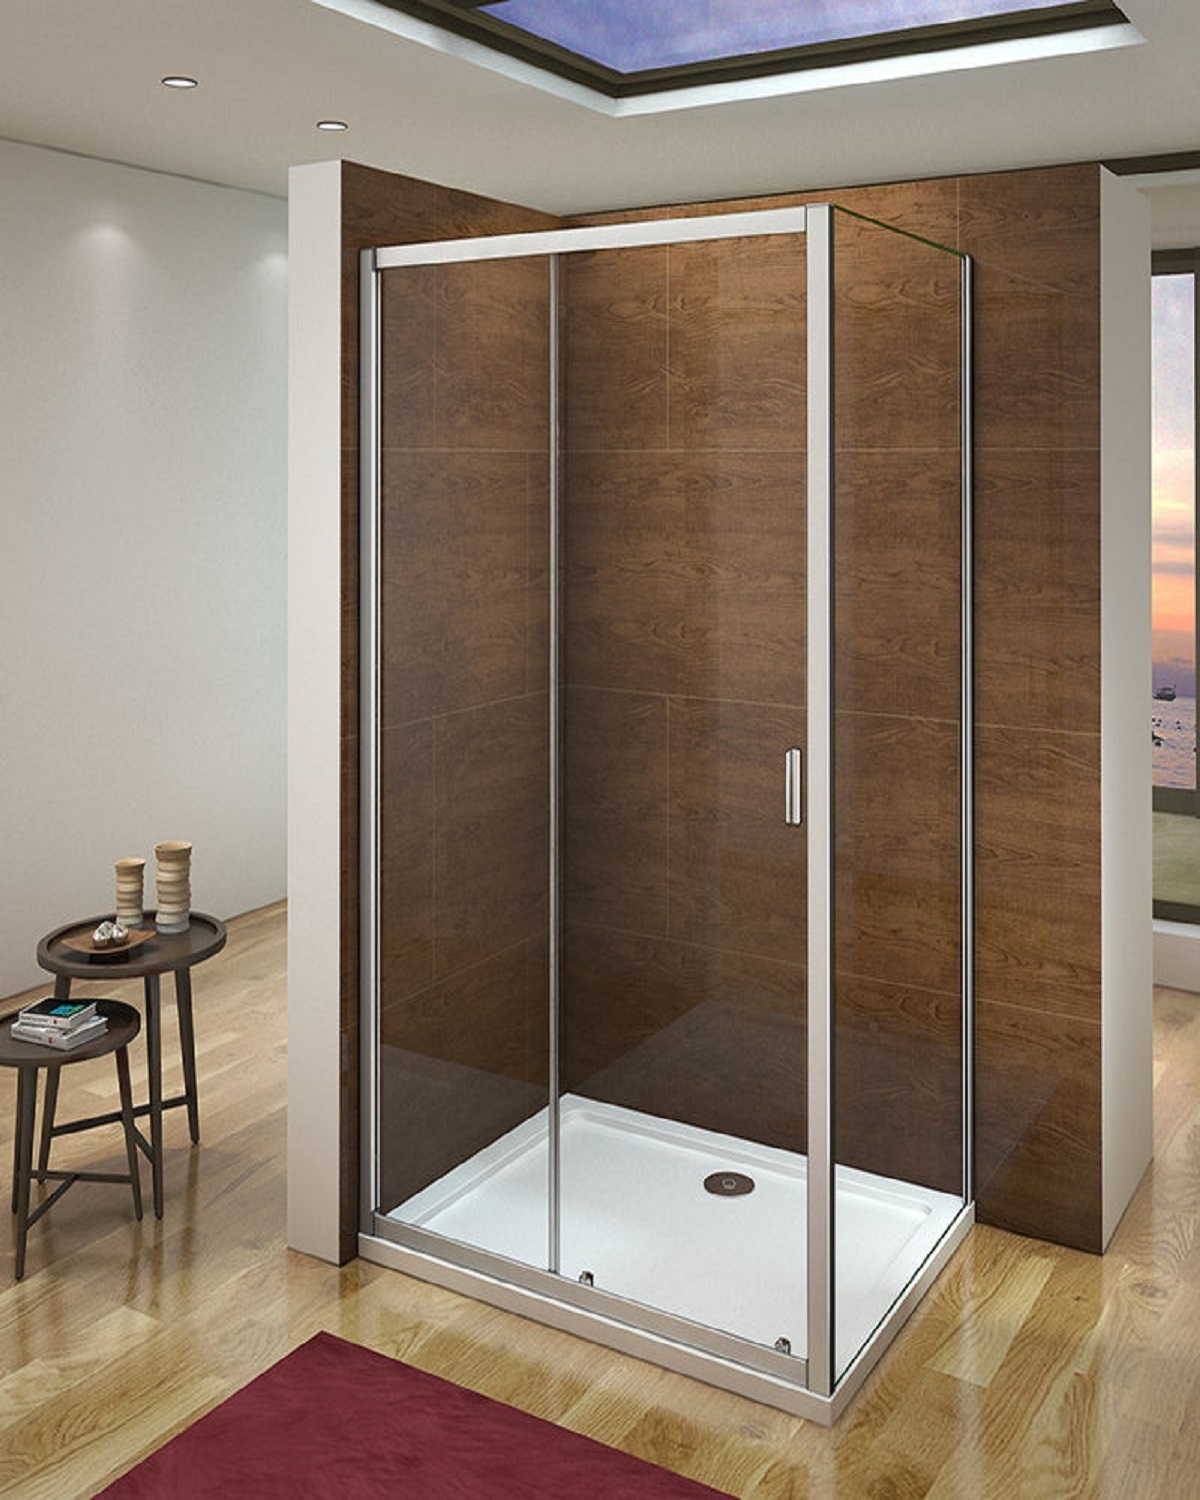 5mm 1400 Sliding Door Shower Enclosure and 760 Side Panel, Bathroom ...